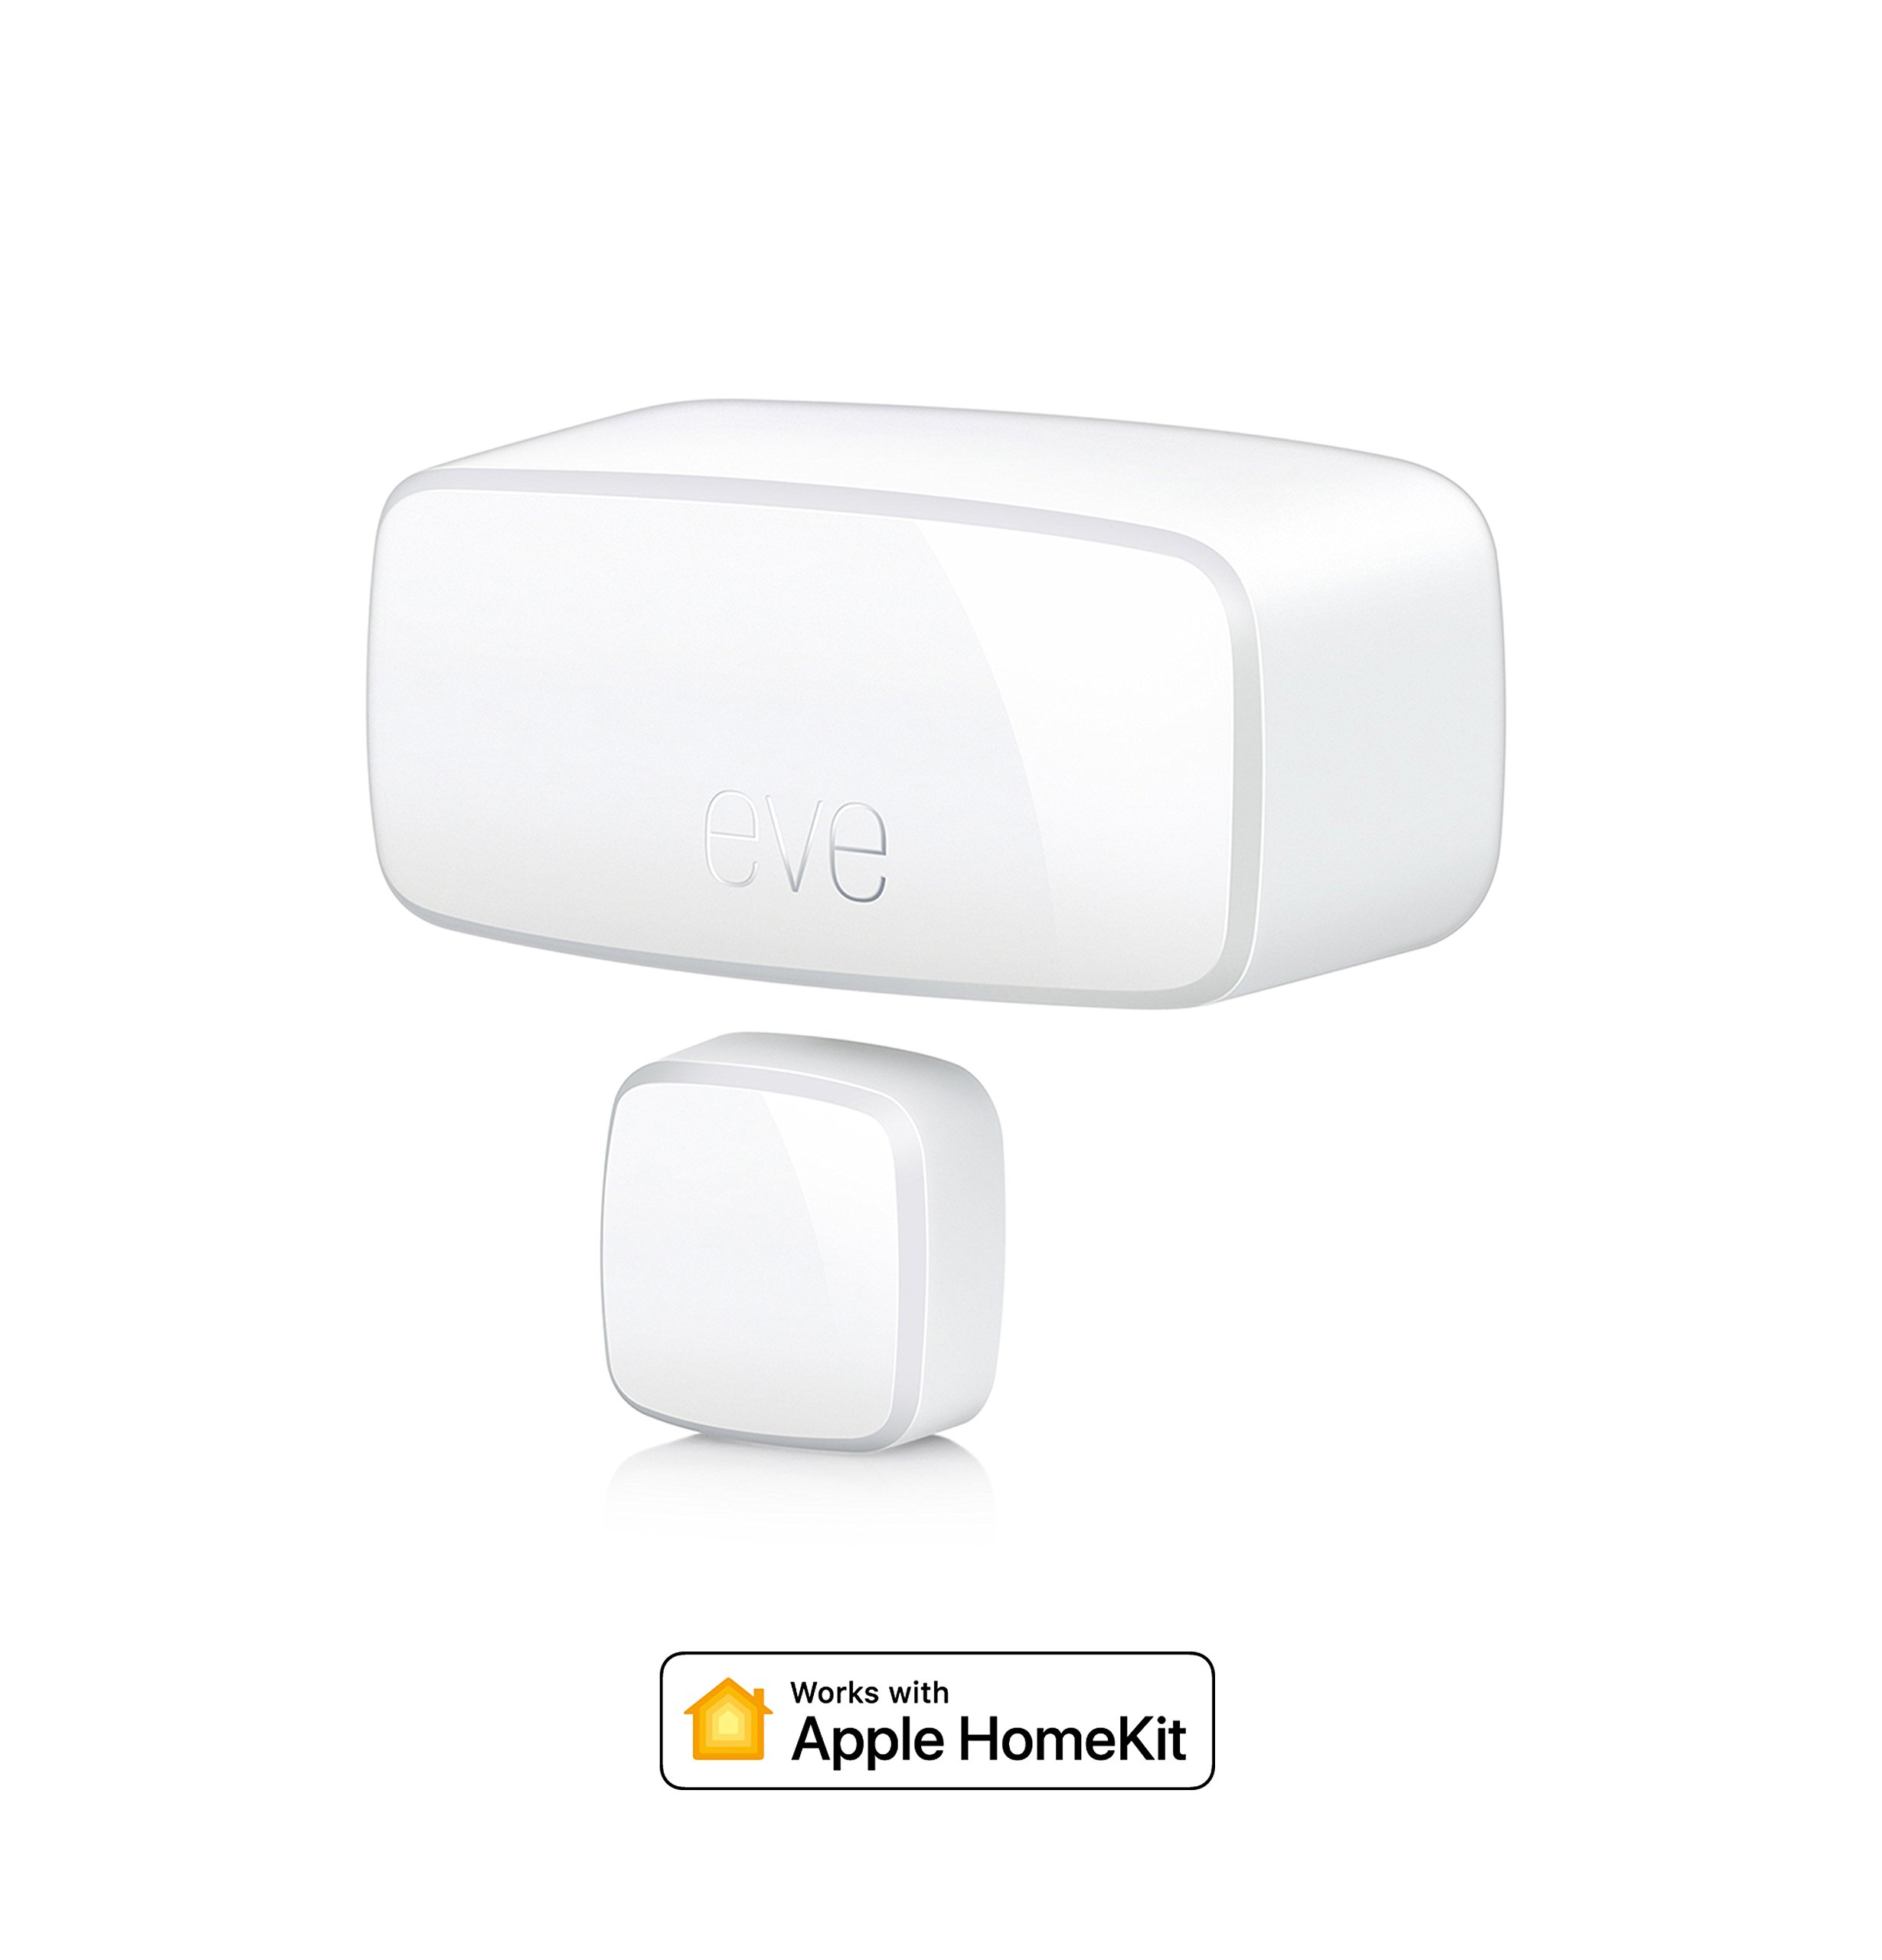 Eve Door & Window - Sensor inalámbrico de contacto, Bluetooth Low Energy, non occorrono